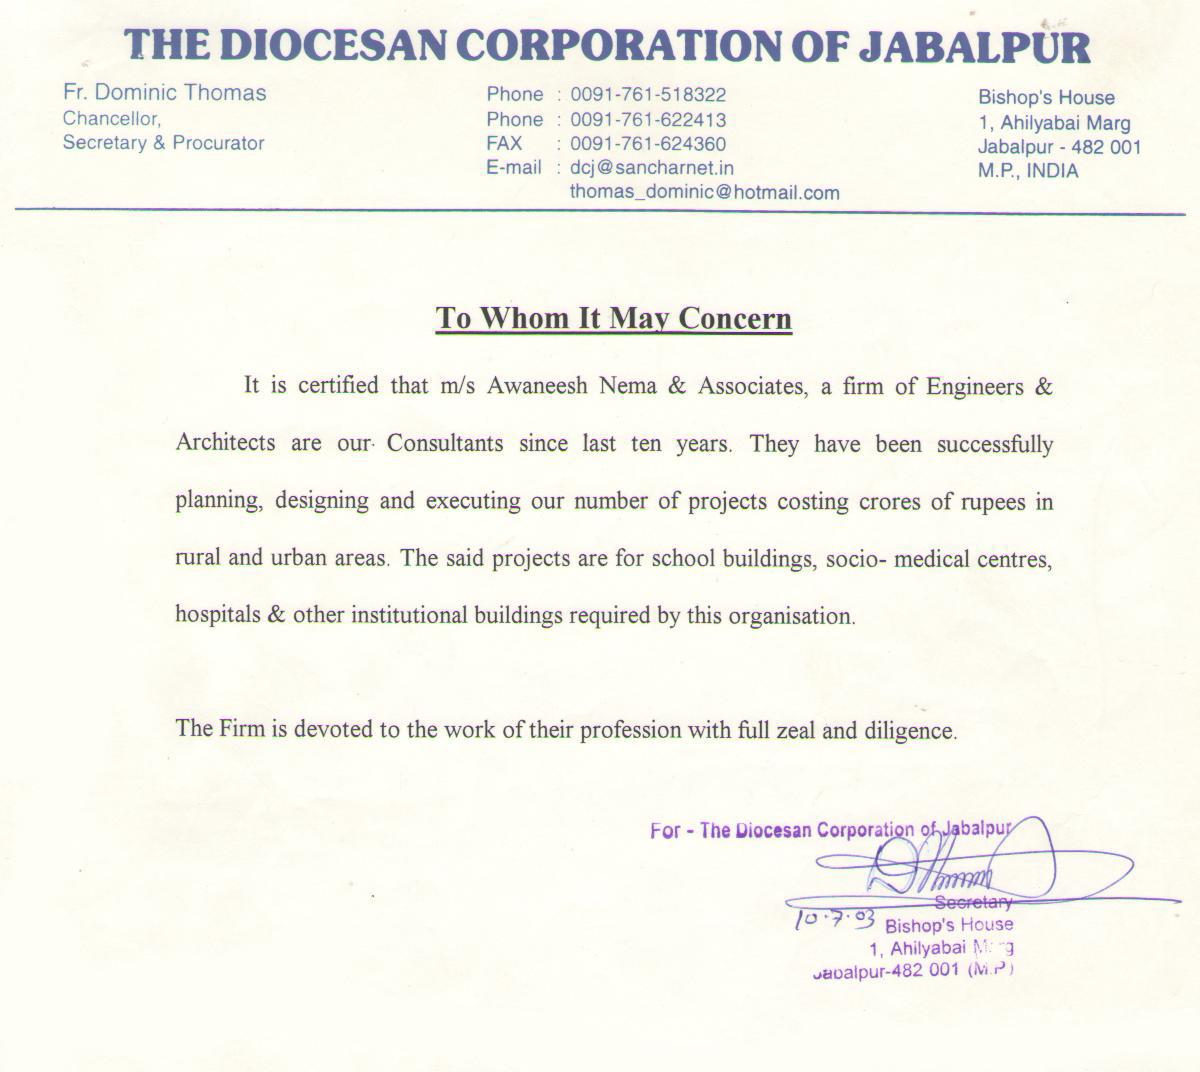 Diocesan Corporation Jabalpur